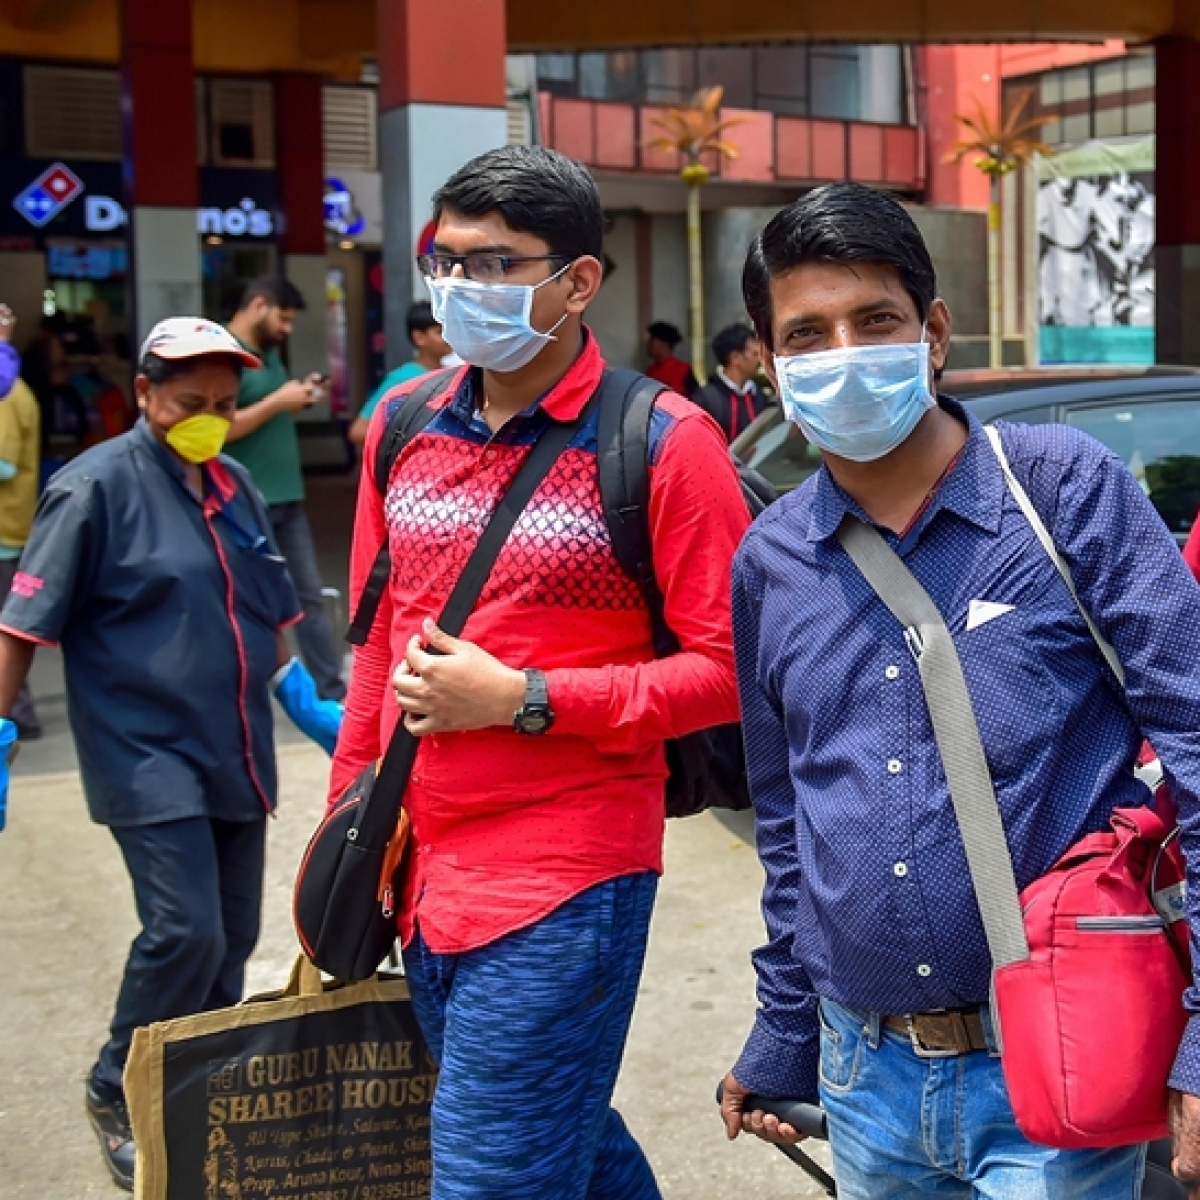 Coronavirus in Mumbai: Average daily COVID-19 case growth rate in the city goes down from 8% to 3.64%